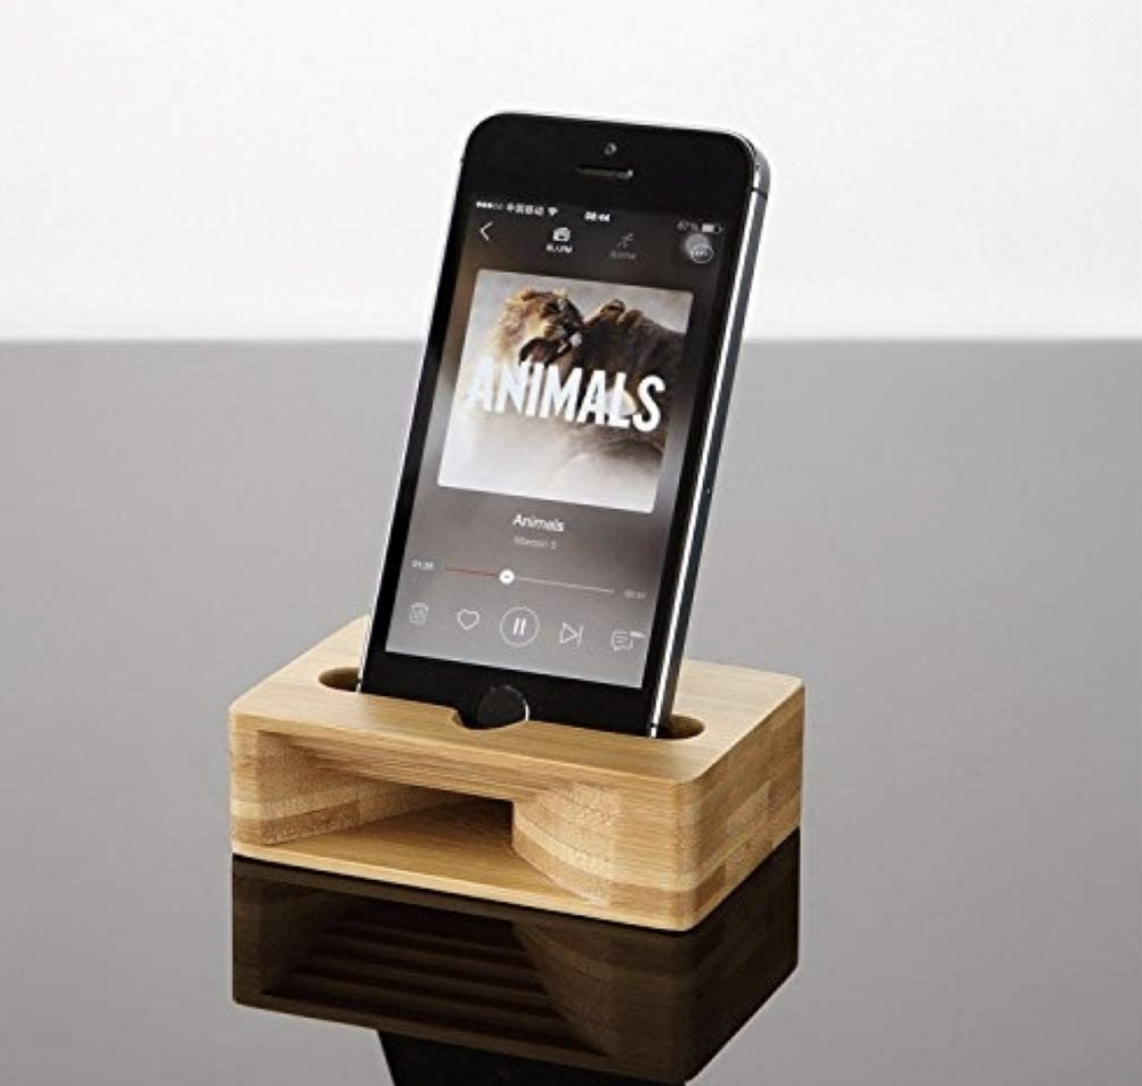 A smartphone sits in a bamboo dock.